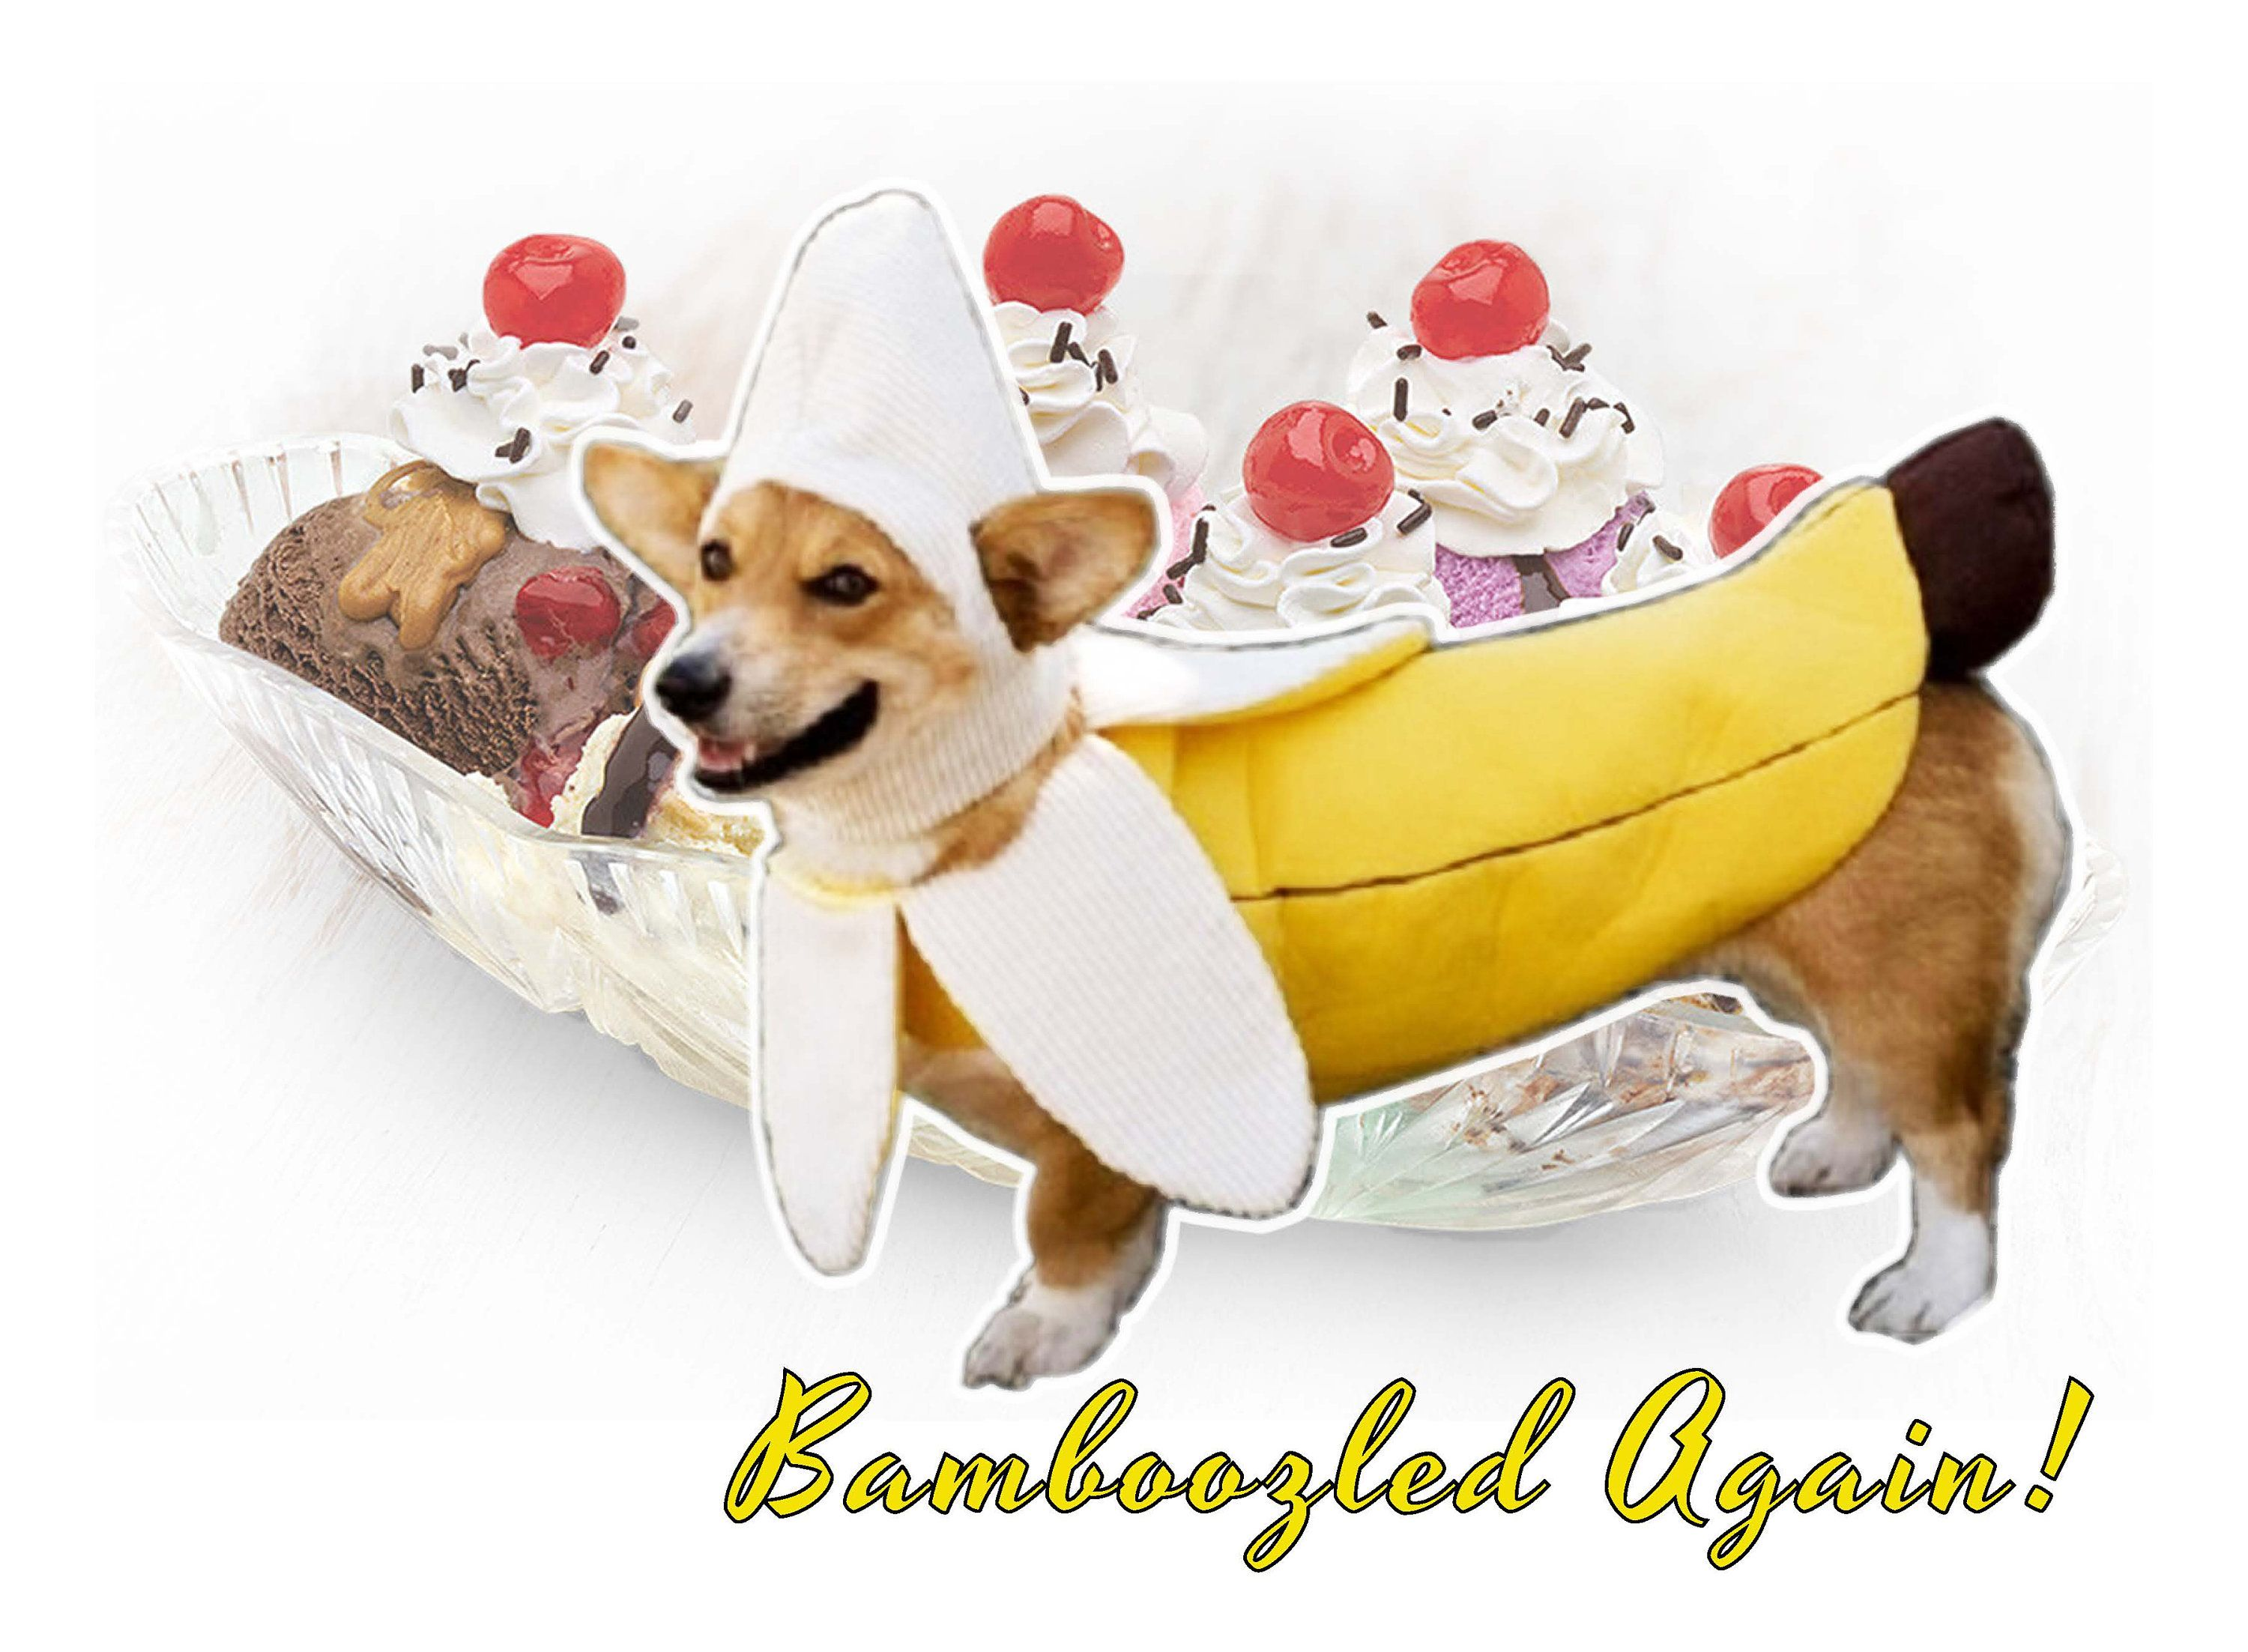 Meme Poster Bamboozled Again Wall Art Dog Fruit Outfit Cute